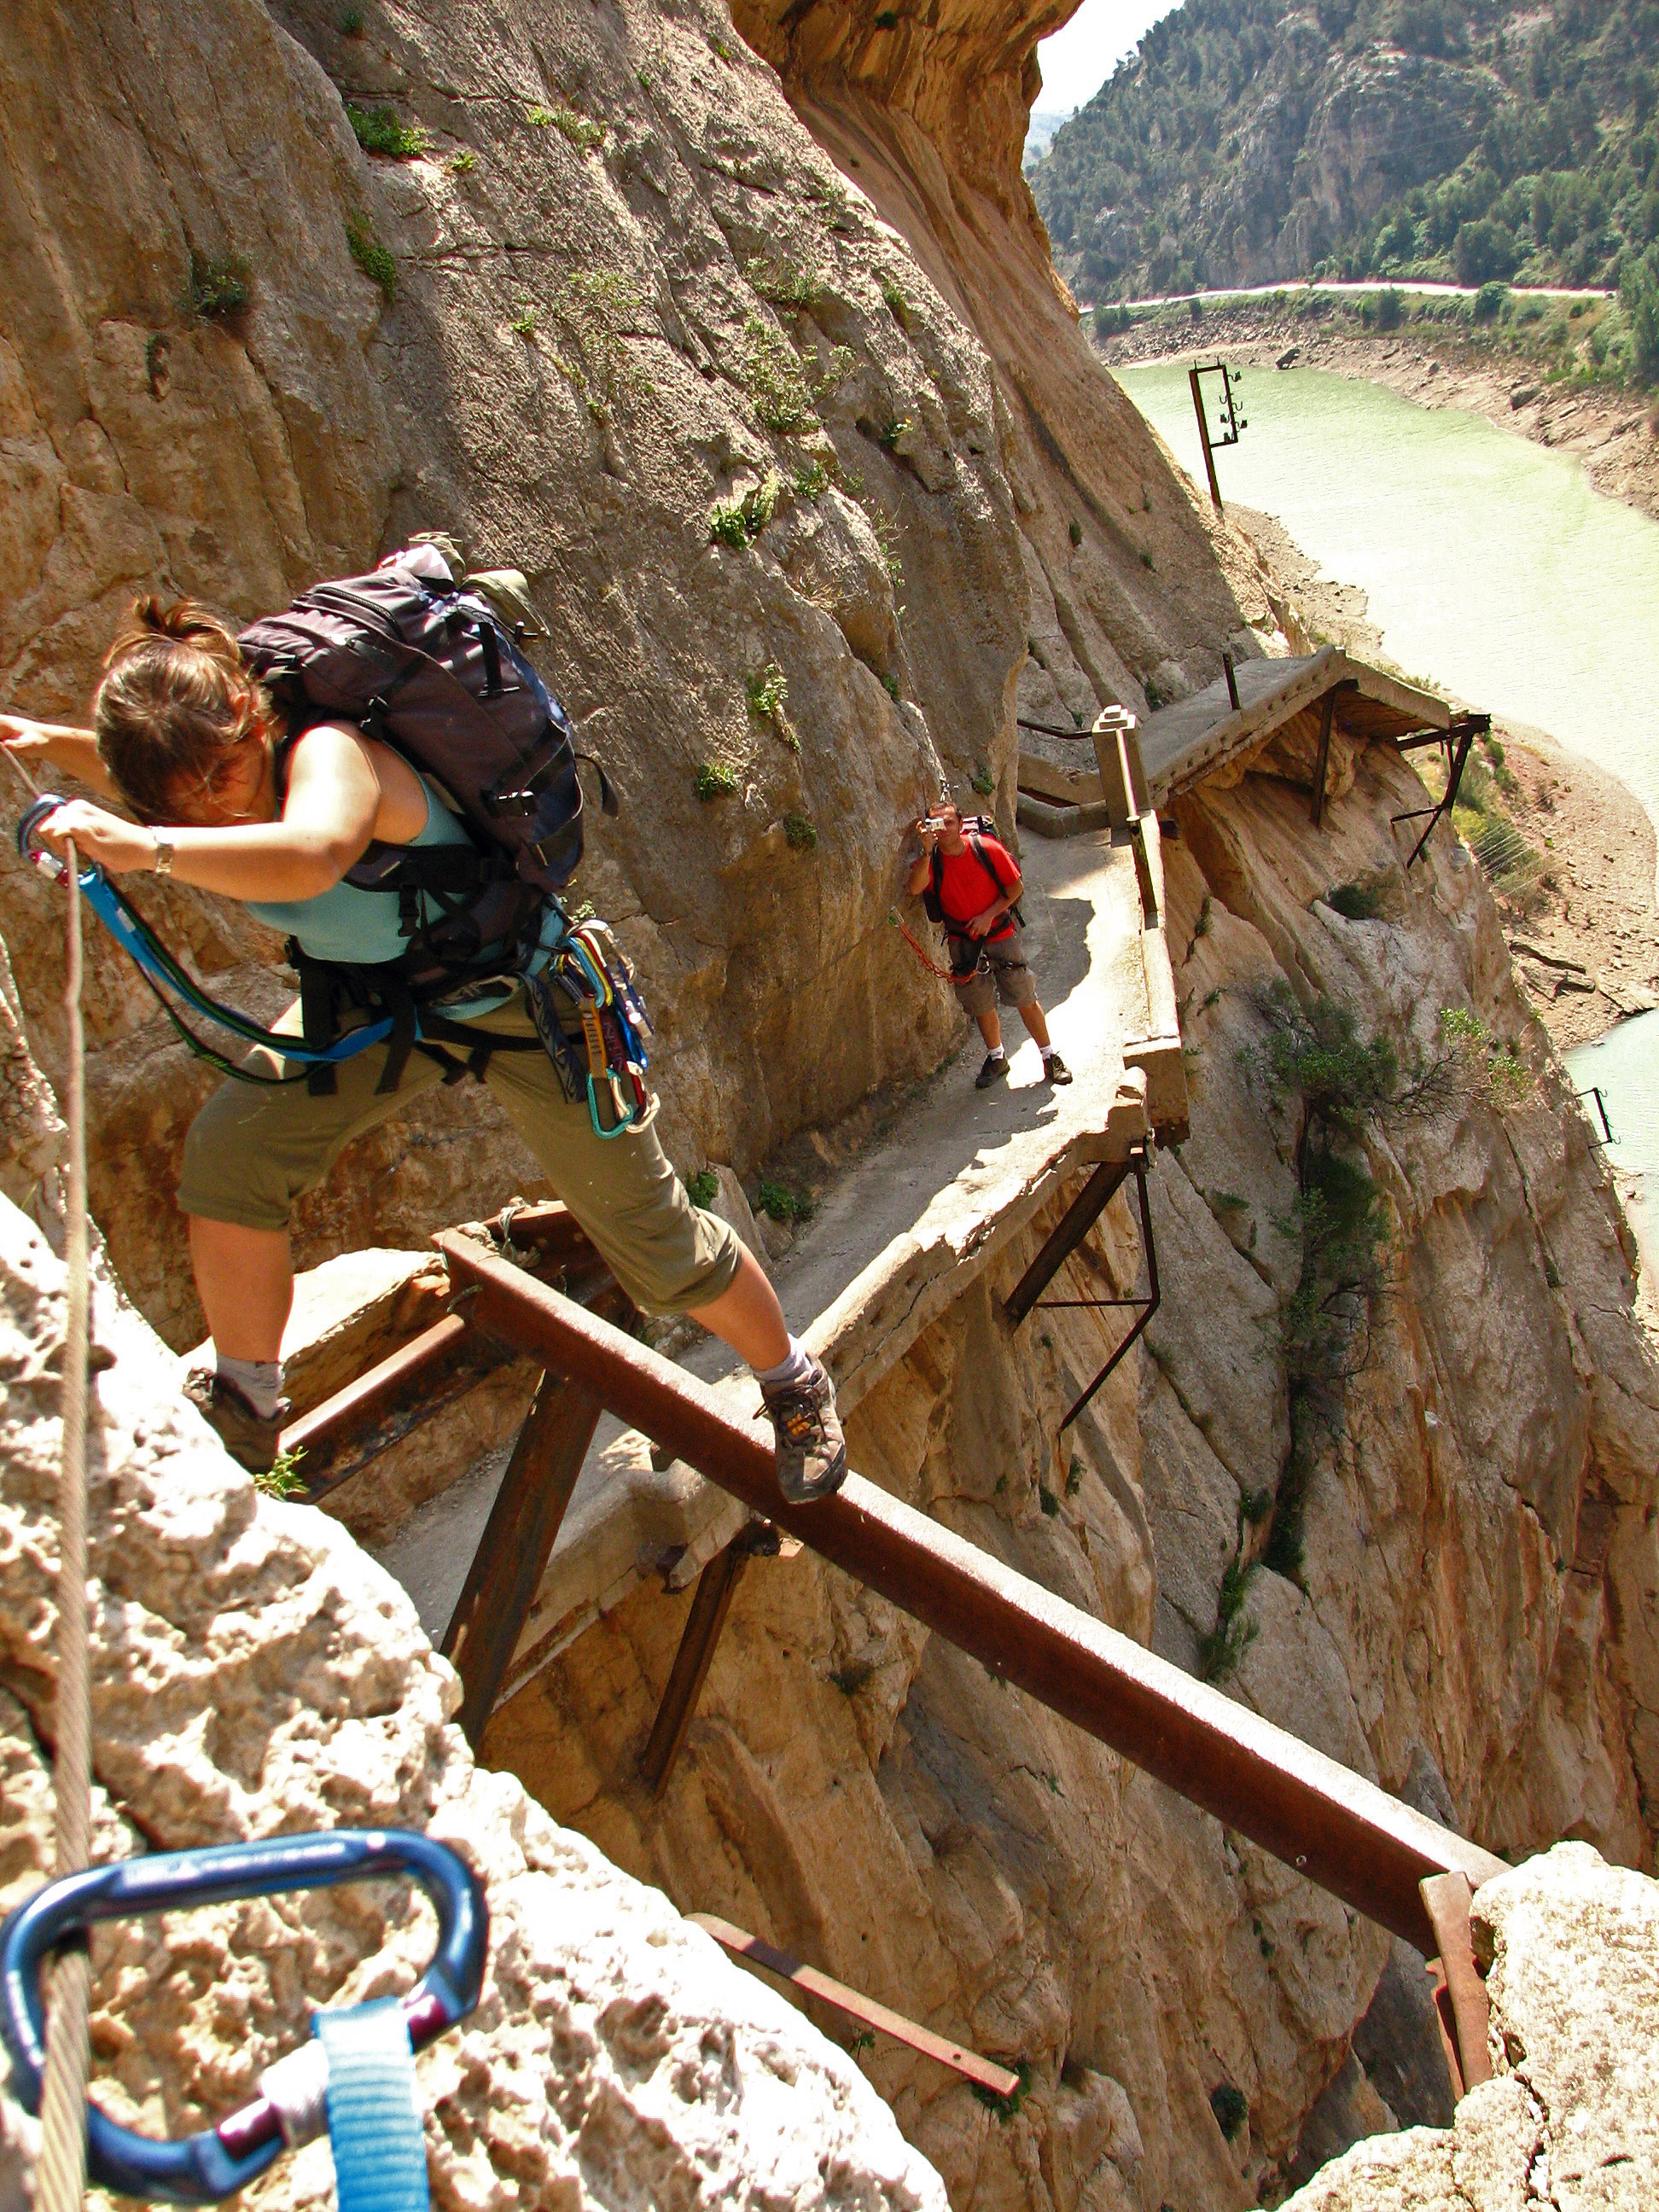 Caminito del Rey: The Most Dangerous Path in the World?